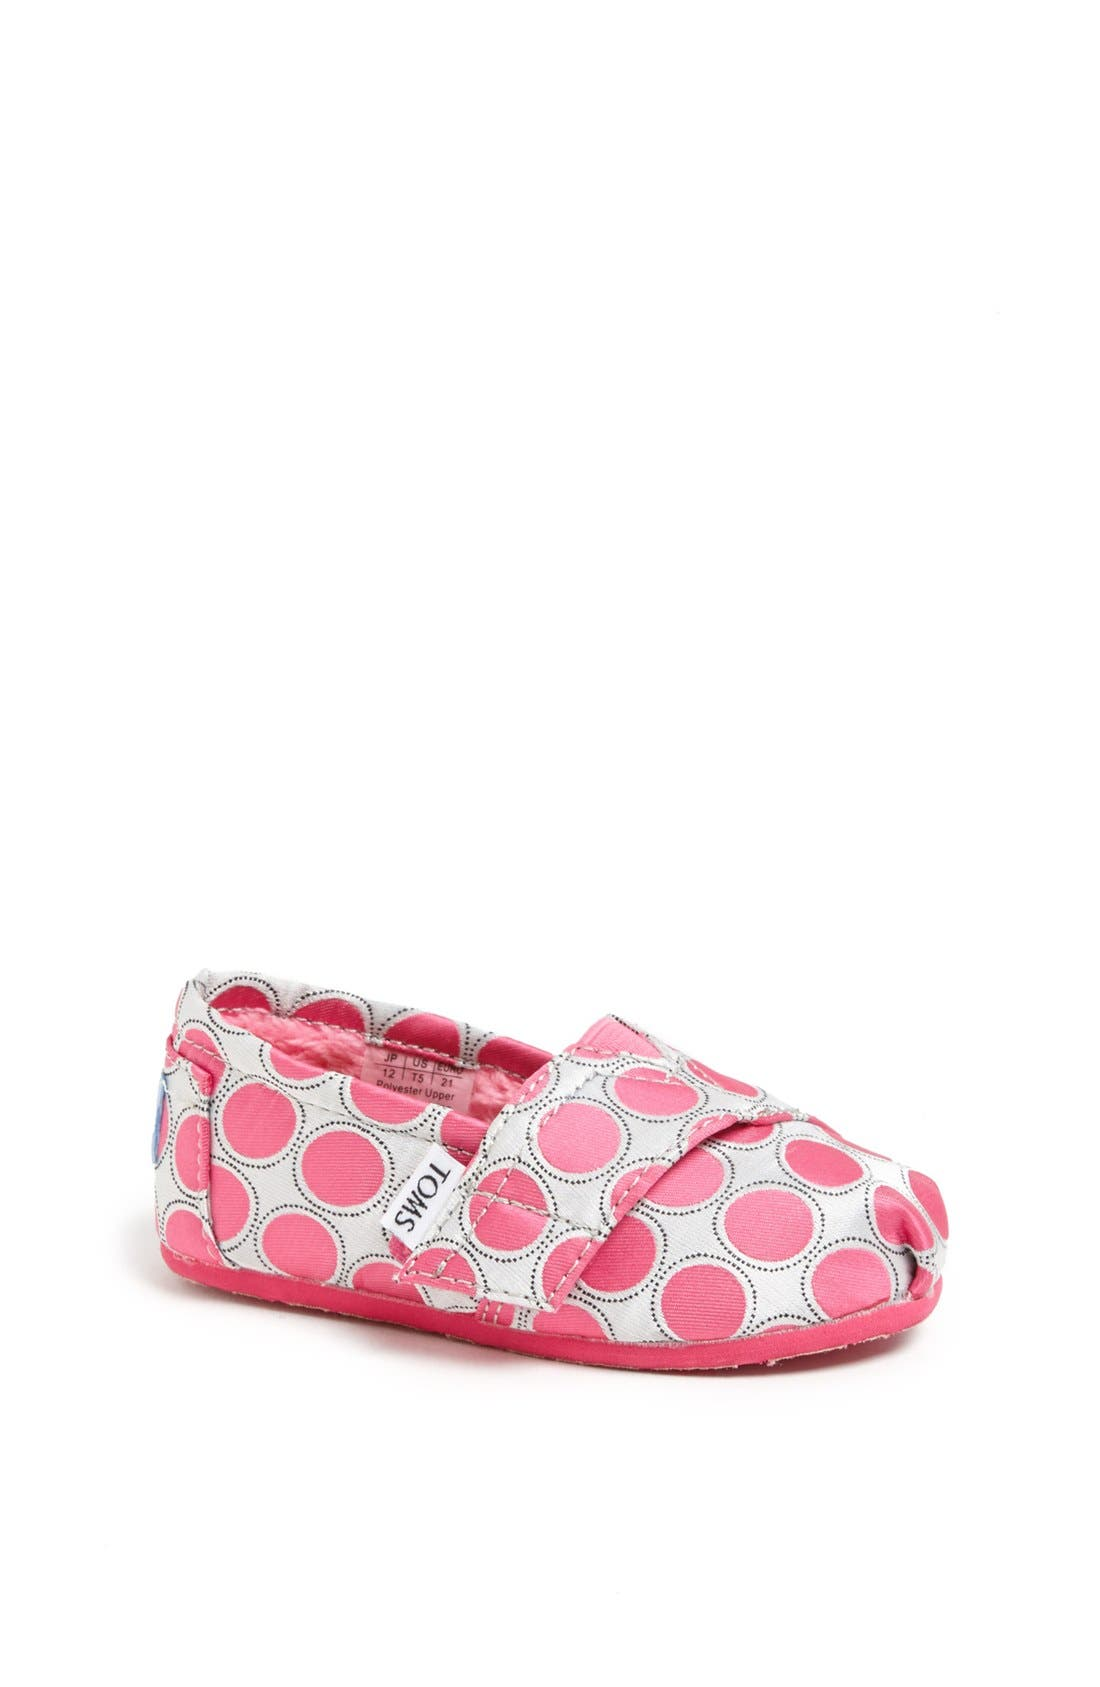 Main Image - TOMS 'Classic - Tiny' Polka Dot Slip-On (Baby, Walker & Toddler)